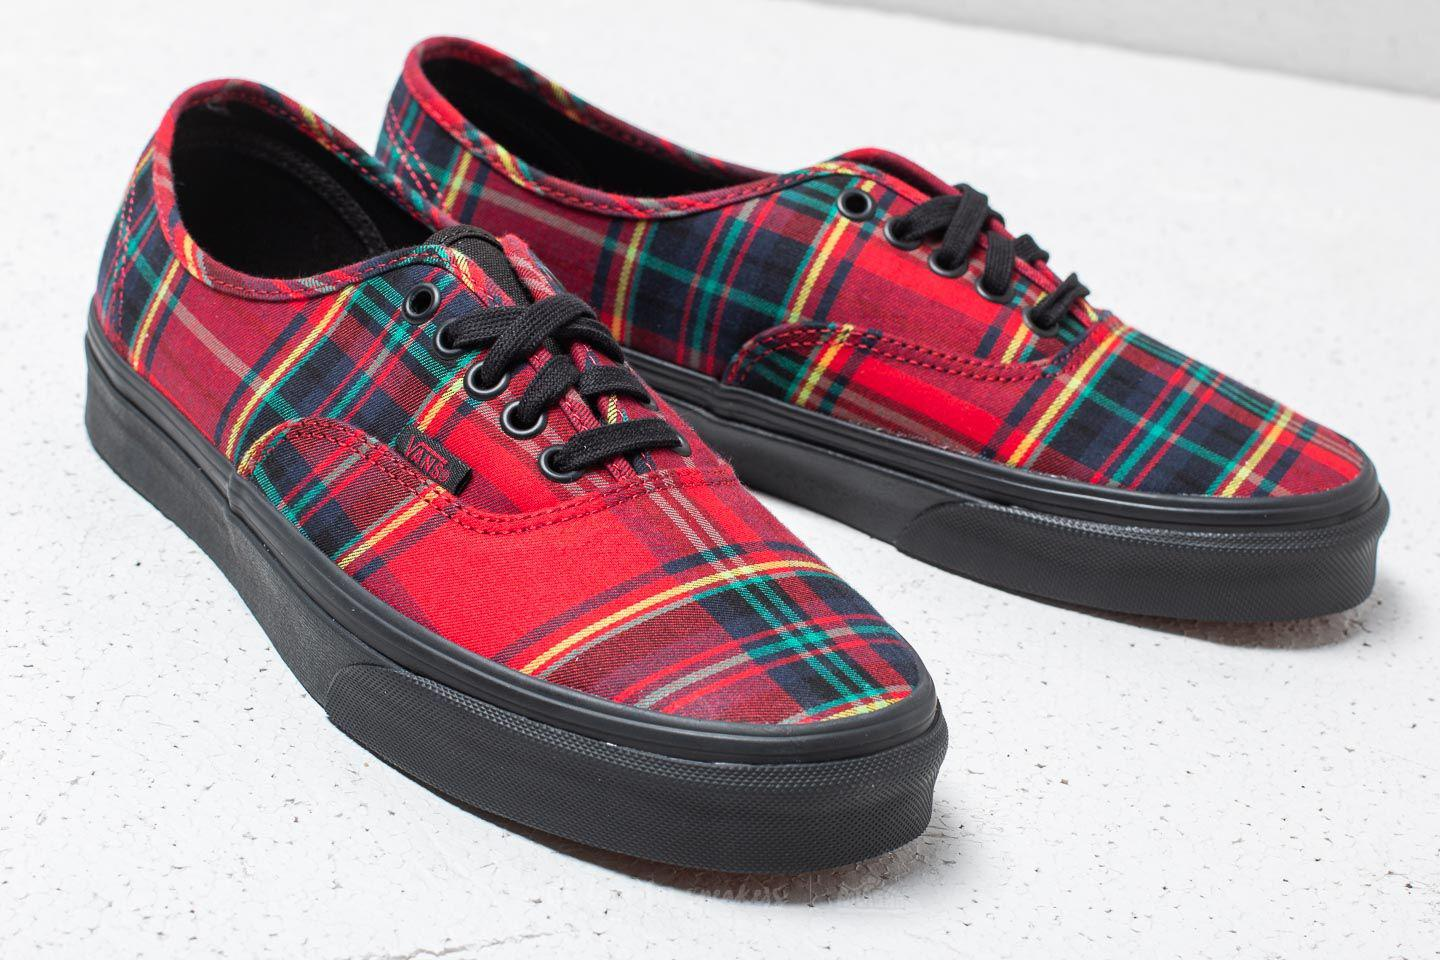 5817b80627 Lyst - Vans Authentic (plaid Mix) Red  Black in Red for Men